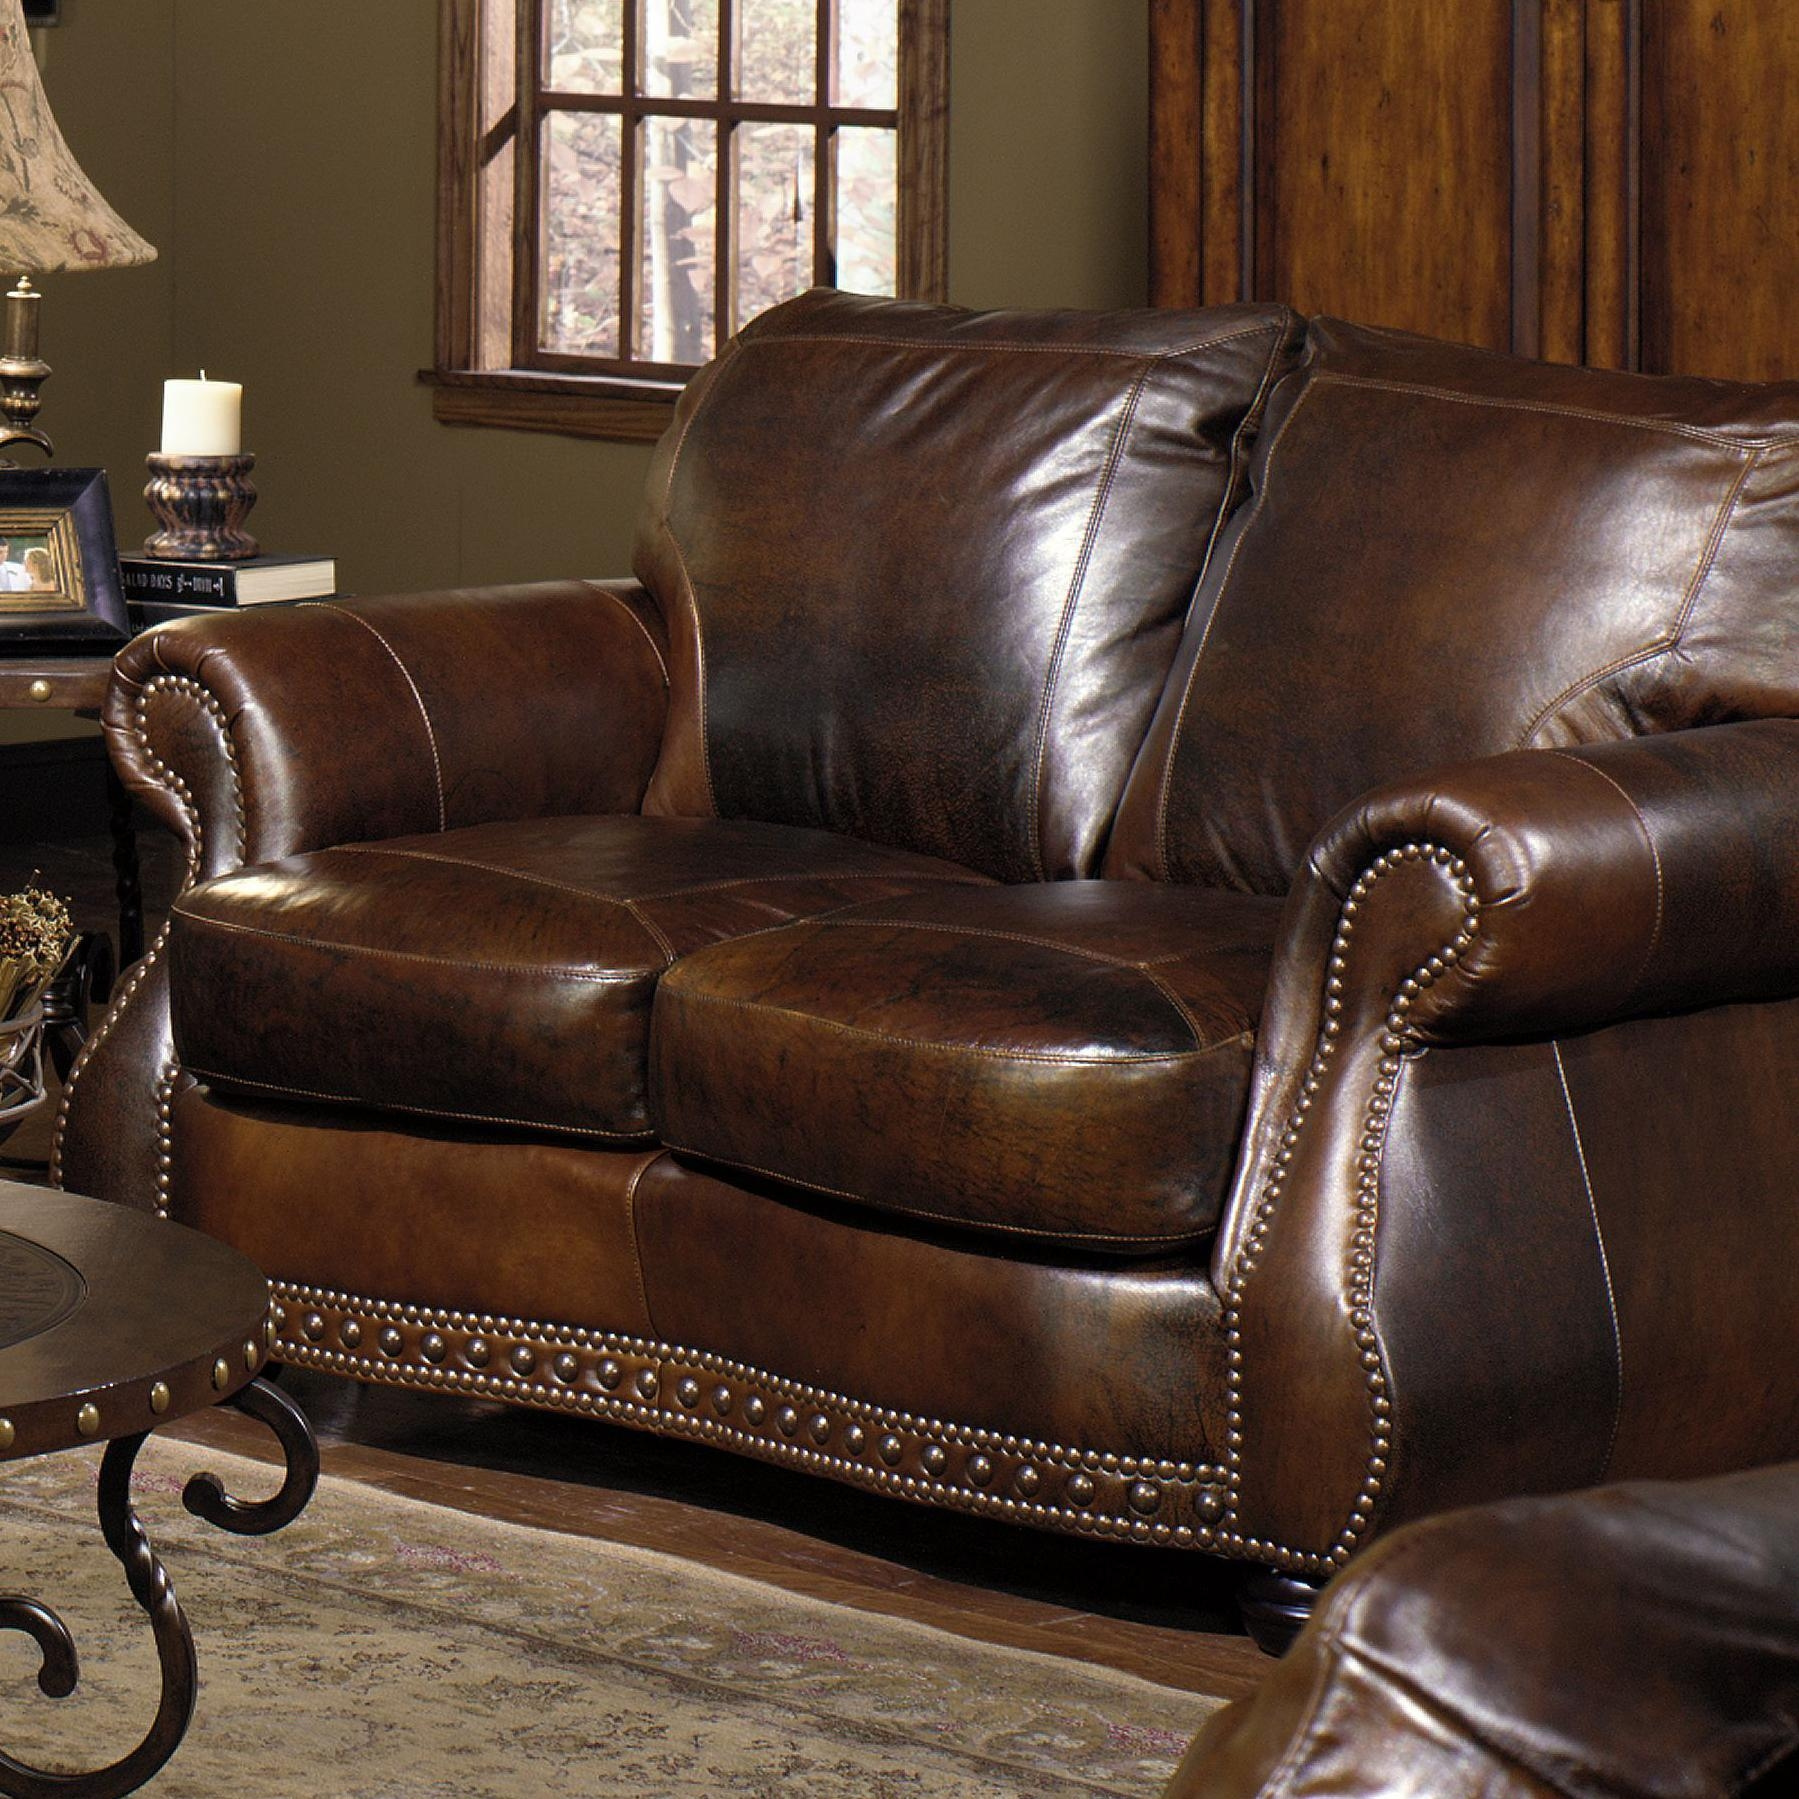 20 Choices Of Brown Leather Sofas With Nailhead Trim